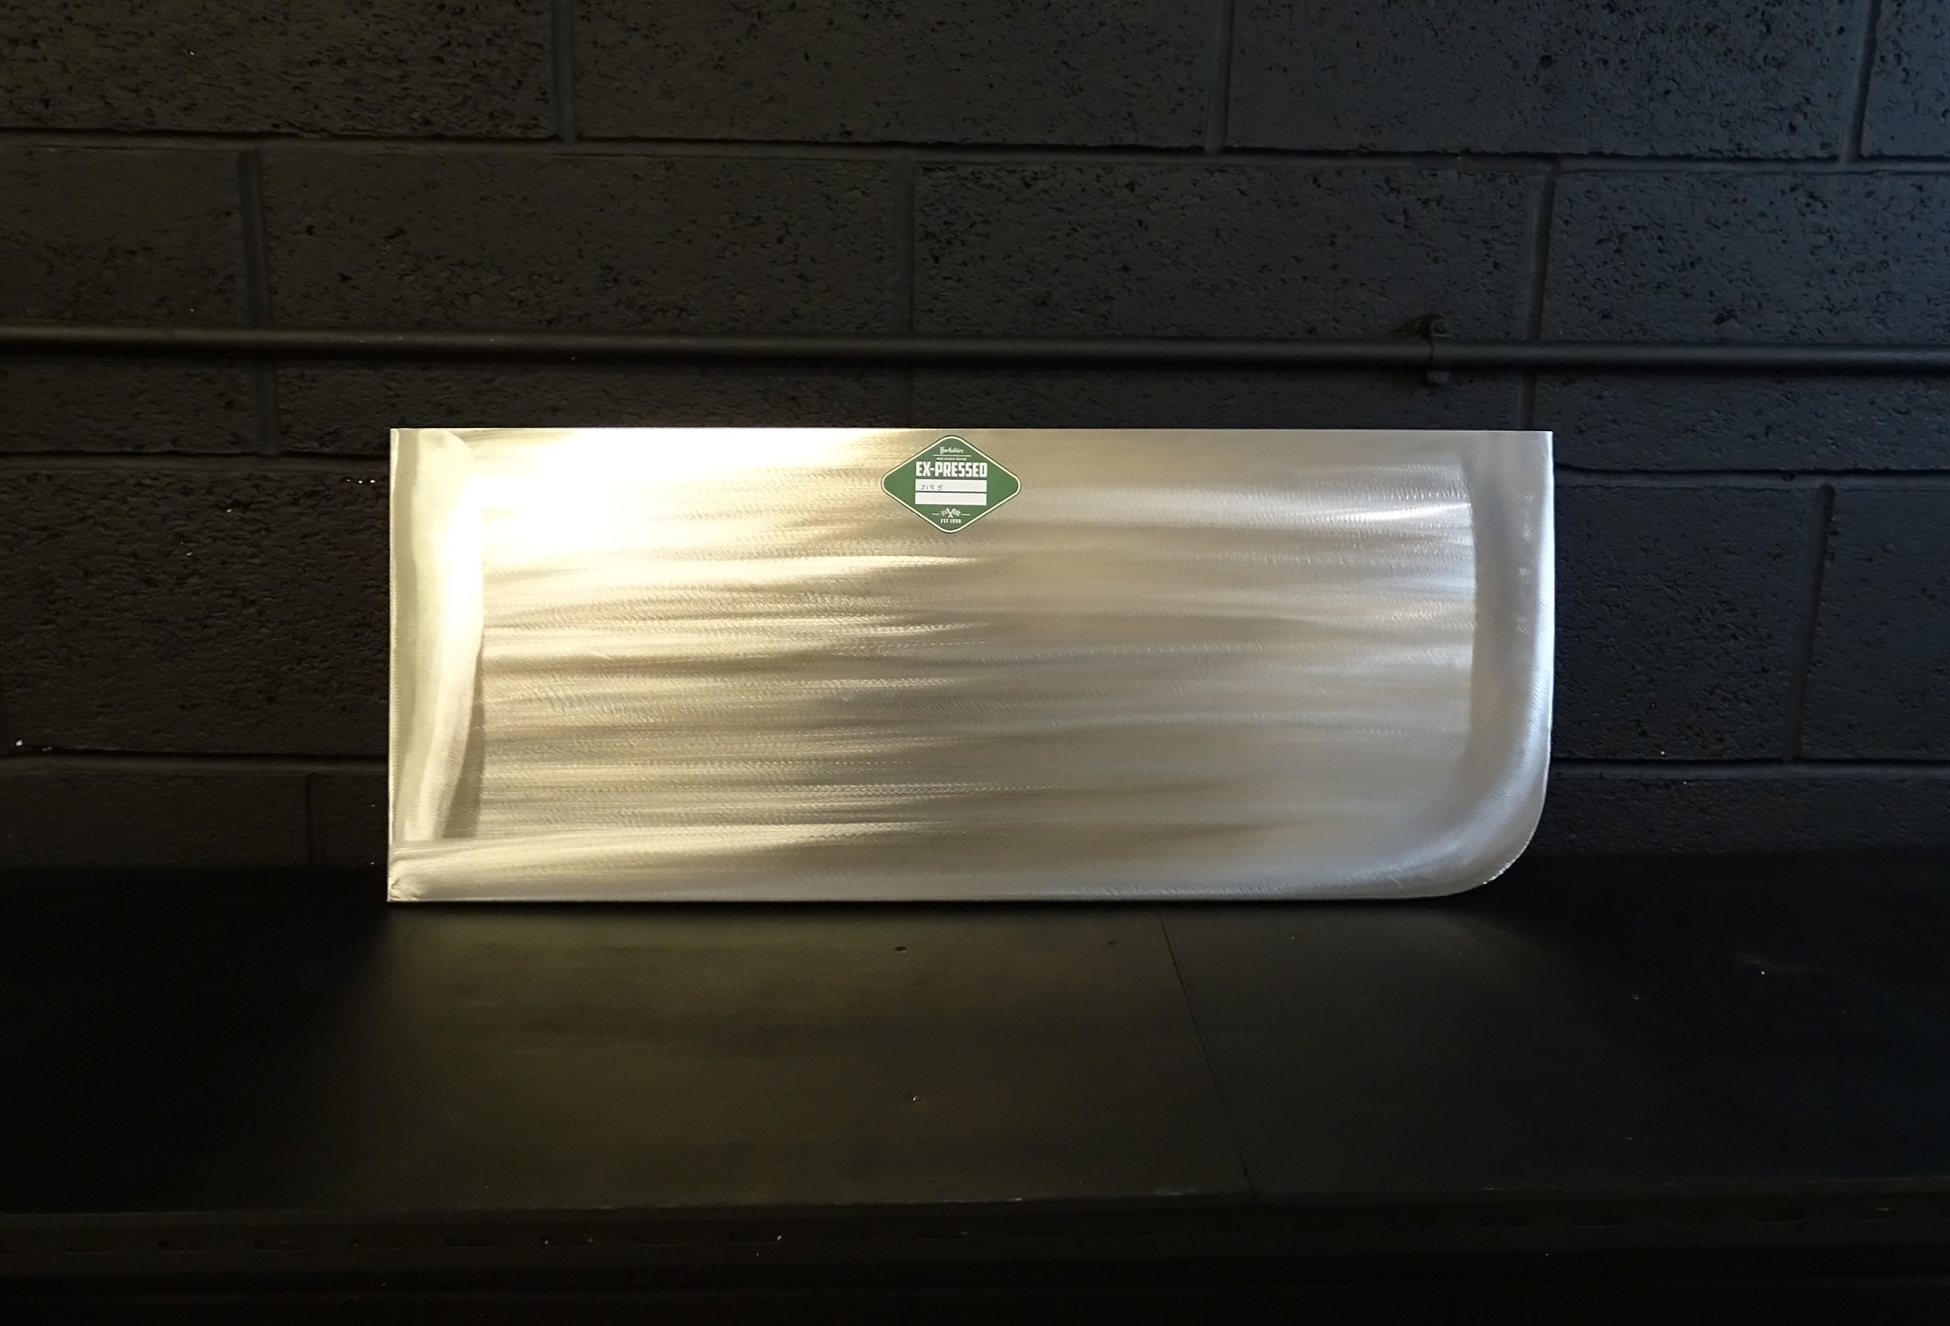 Ford Consul / Zodiac / Zephyr right-hand front lower door skin front view